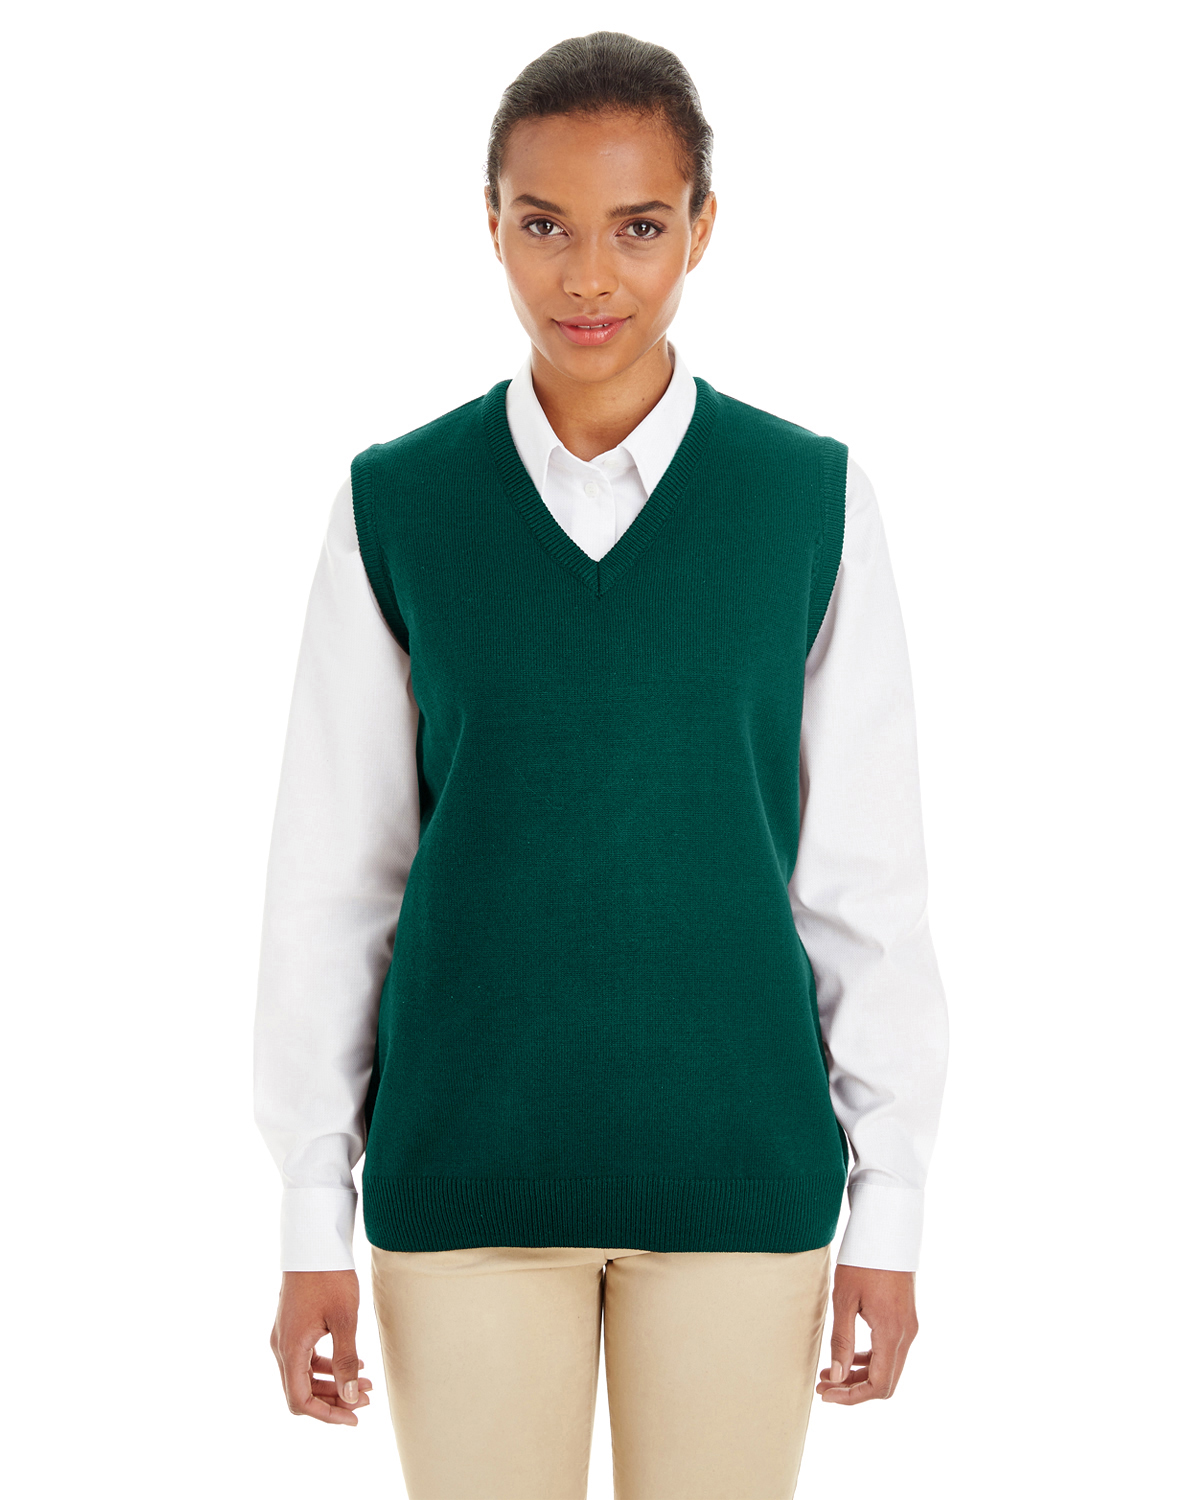 Harriton - M415W Ladies' Pilbloc V-Neck Sweater Vest, Pensacola, Embroidery, Screen Printing, Logo Masters International